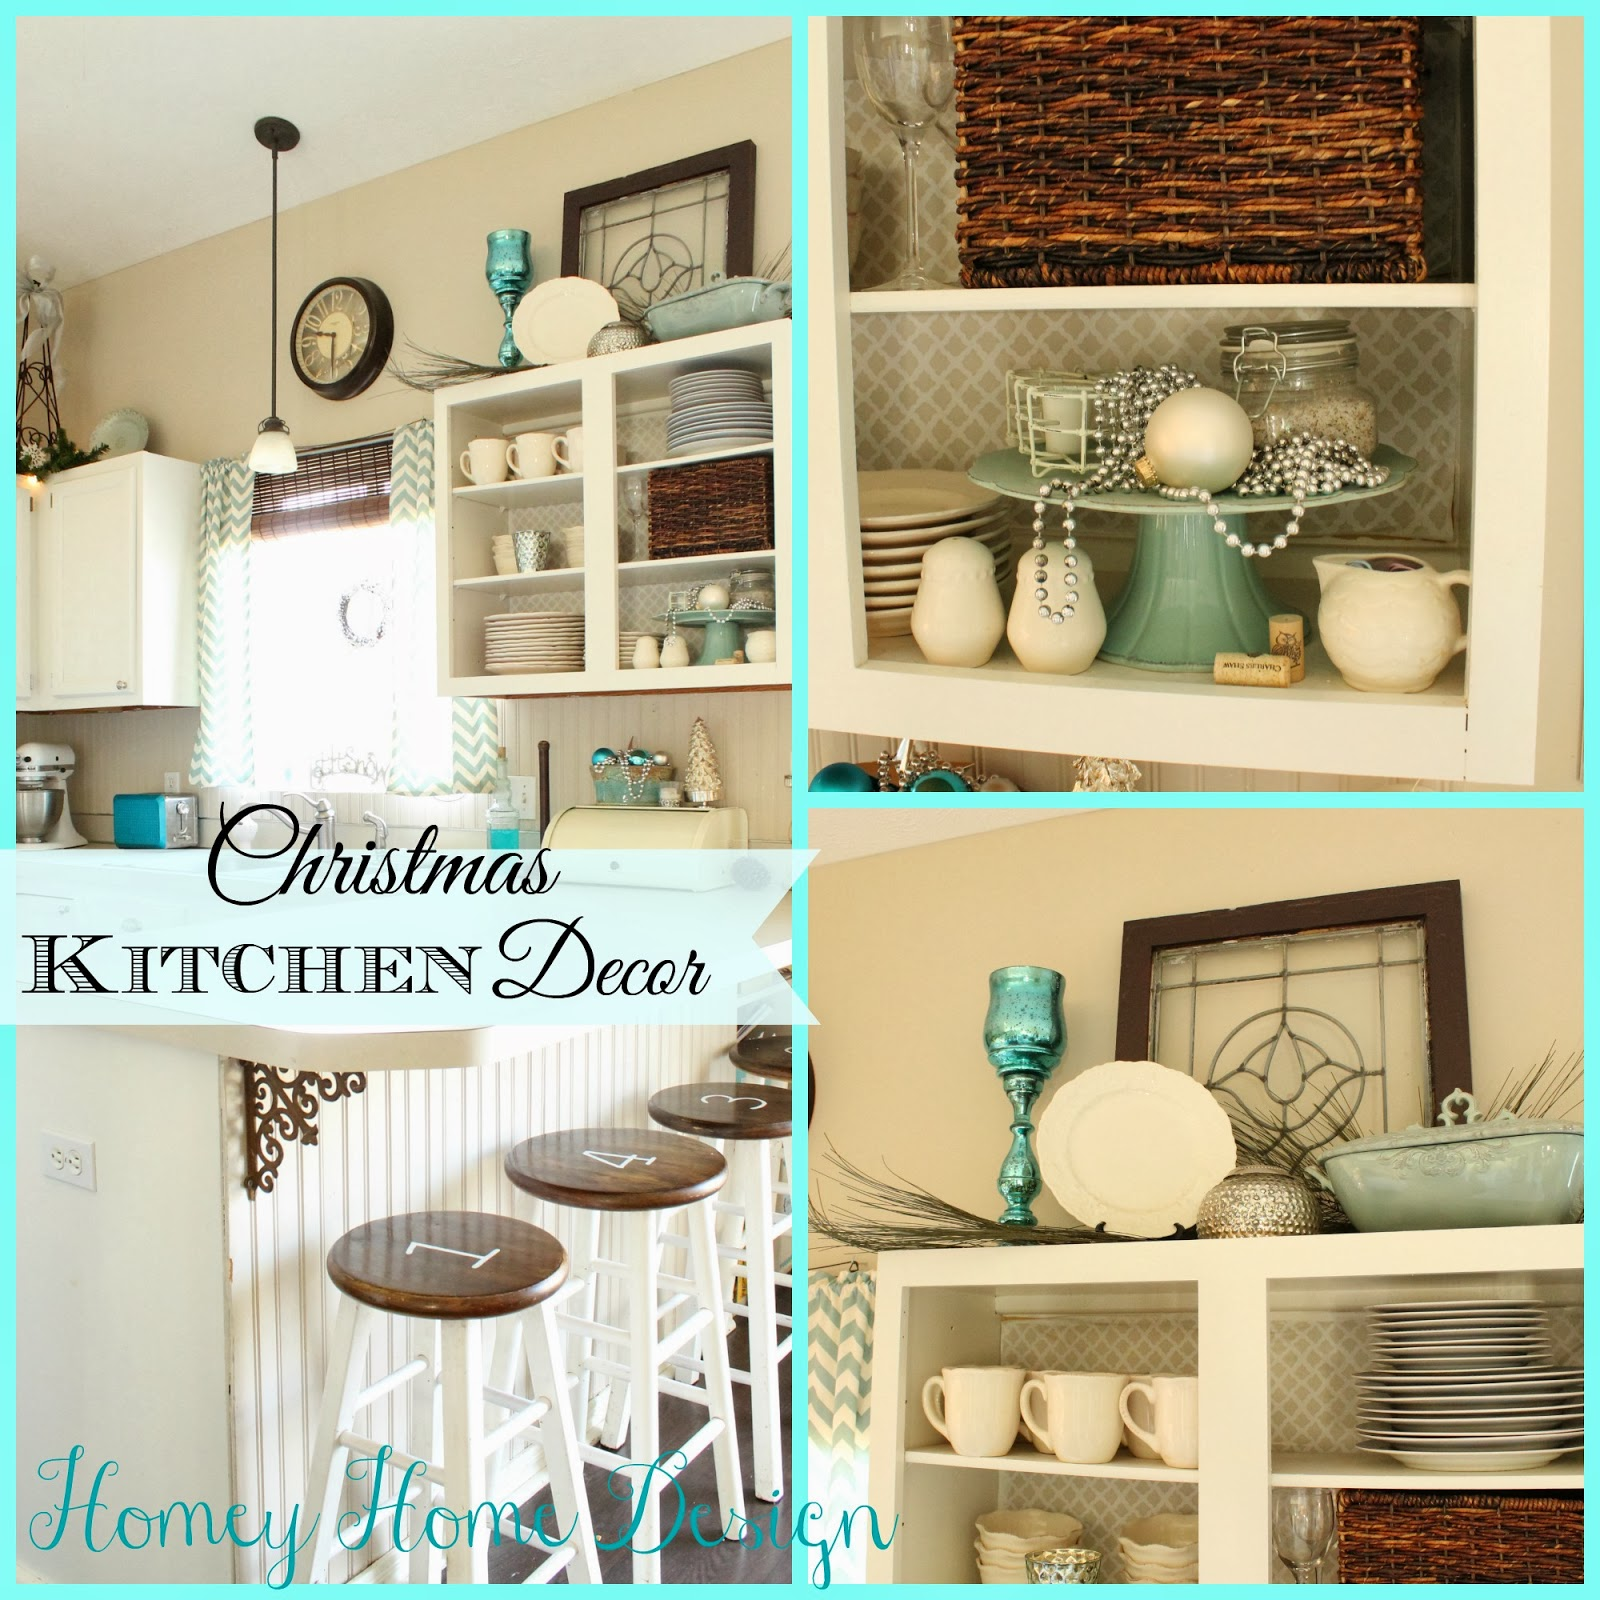 Homey Home Design: Christmas In The Kitchen